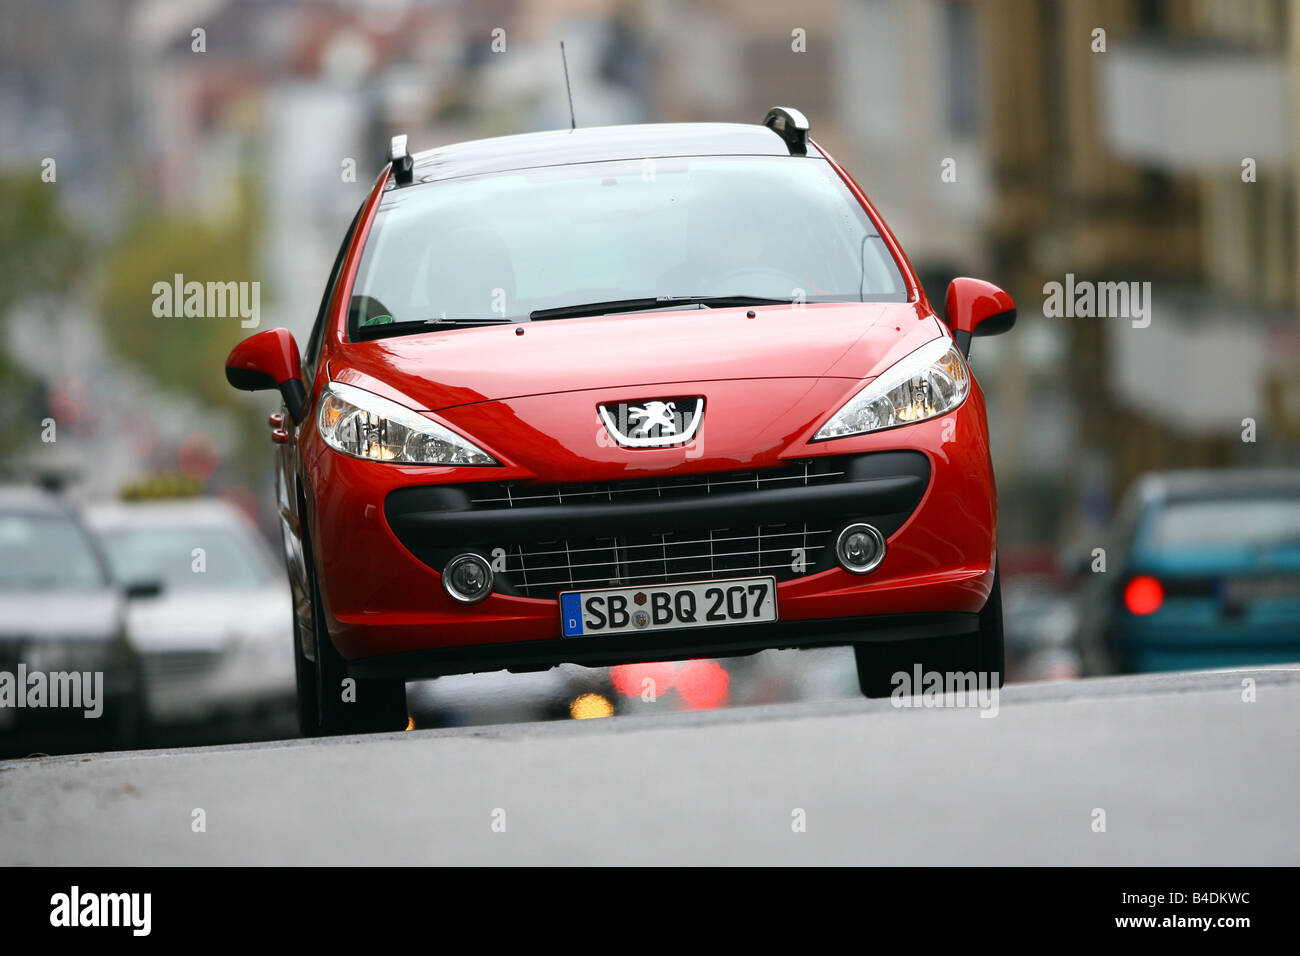 Peugeot 207 SW 120 VTi Sport, red, model year 2006-, driving, diagonal from the front, frontal view, City - Stock Image